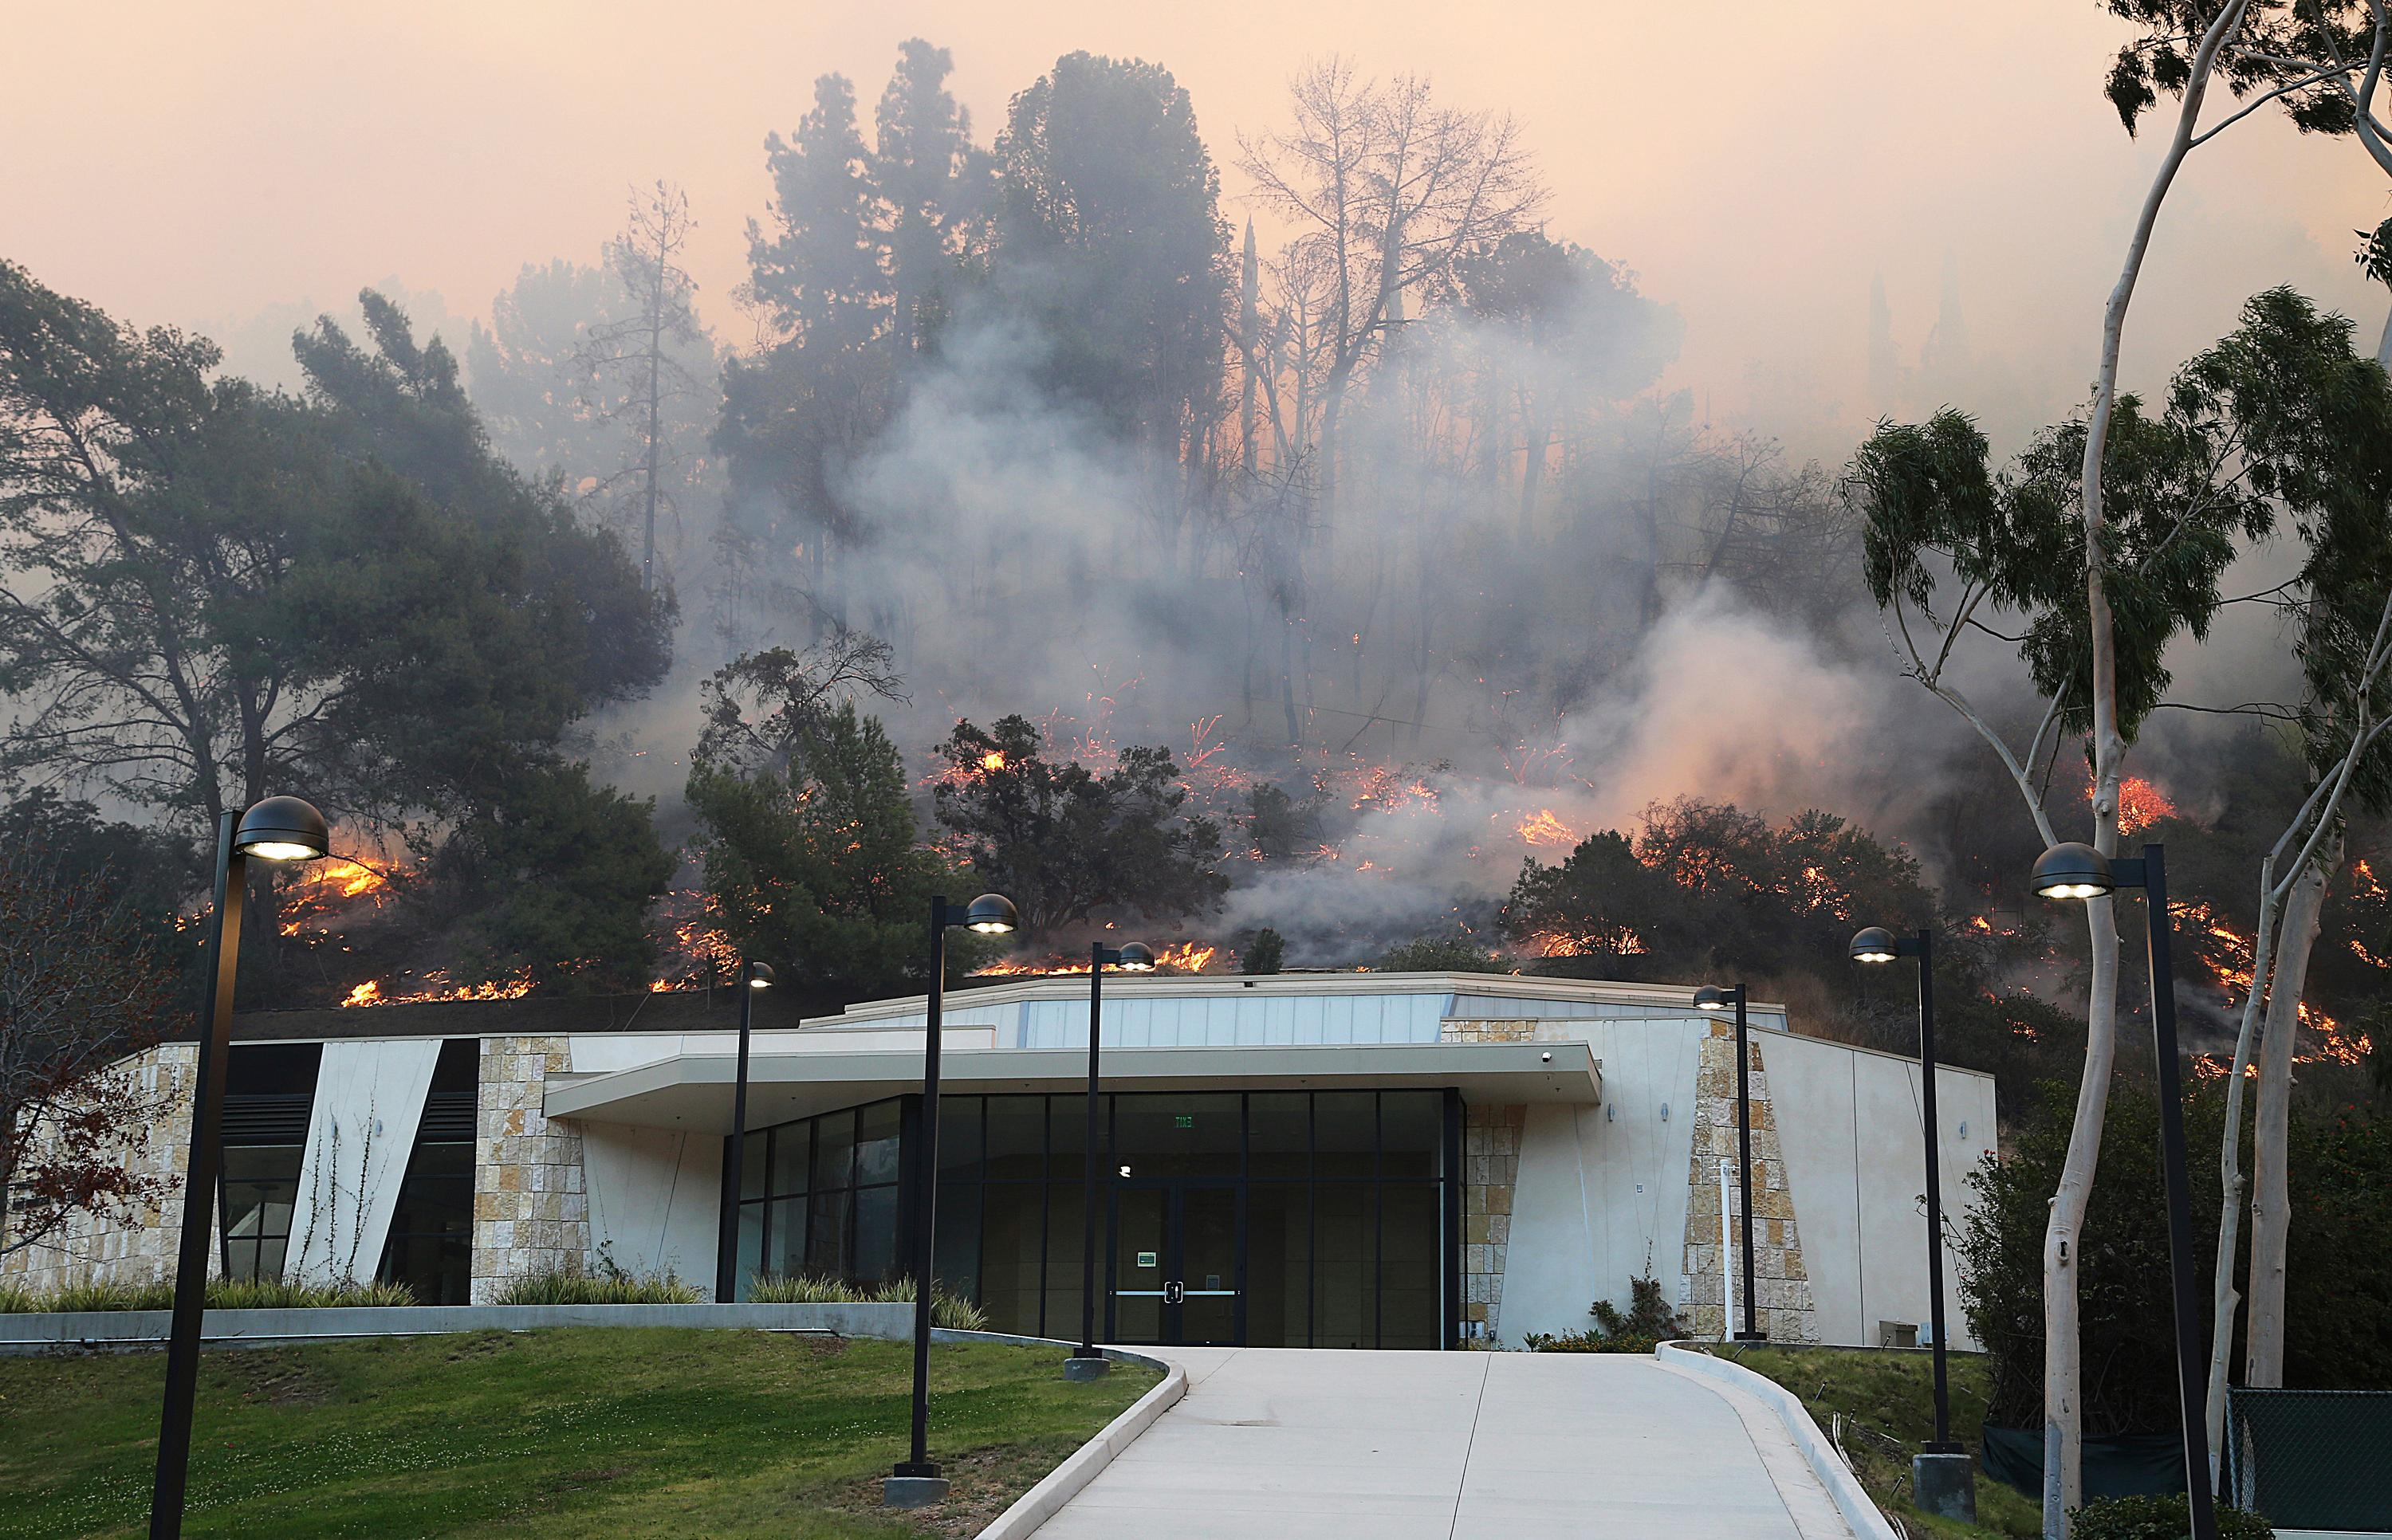 Flames from a wildfire work their way down a slope behind Leo Baeck Temple in Sepulveda Pass in the Bel Air district of Los Angeles Wednesday, Dec. 6, 2017. (AP Photo/Reed Saxon)